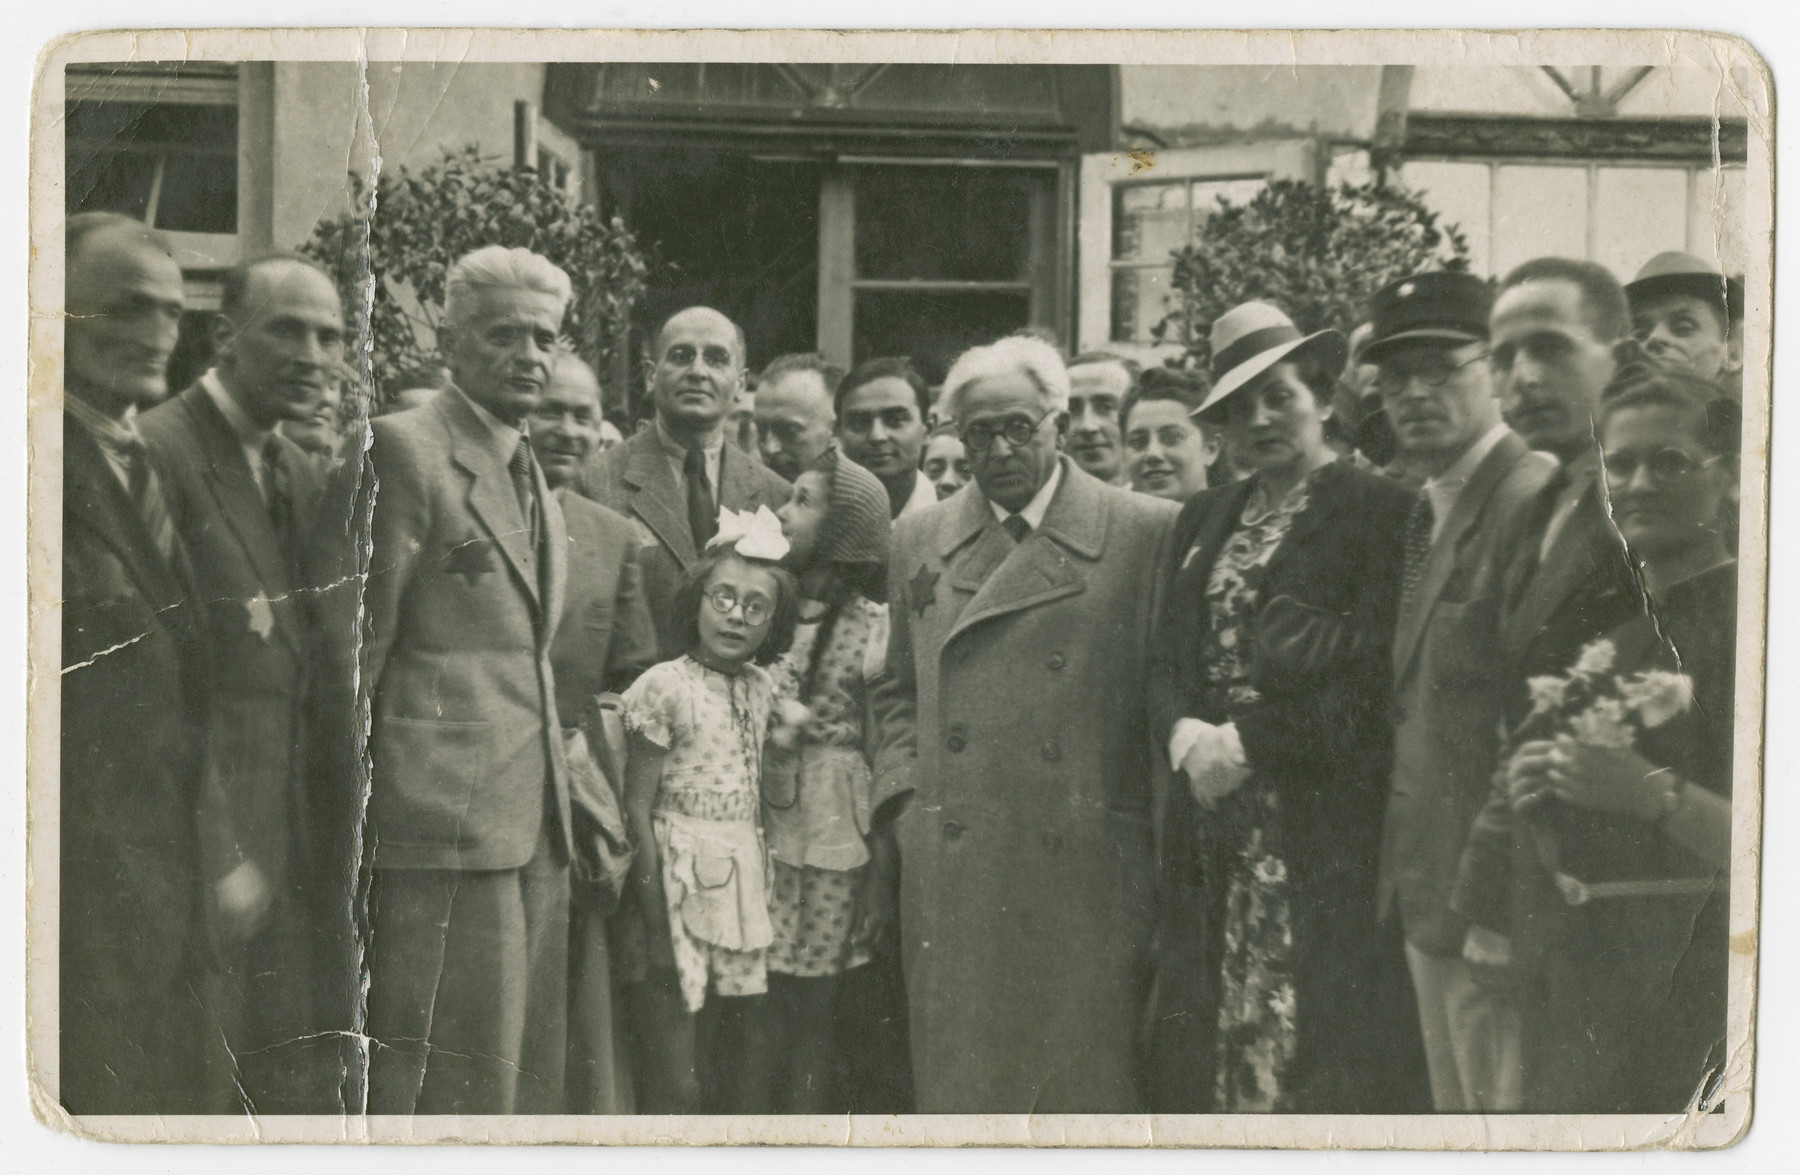 Mordechai Chaim Rumkowski poses with Jewish residents of the Lodz ghetto.